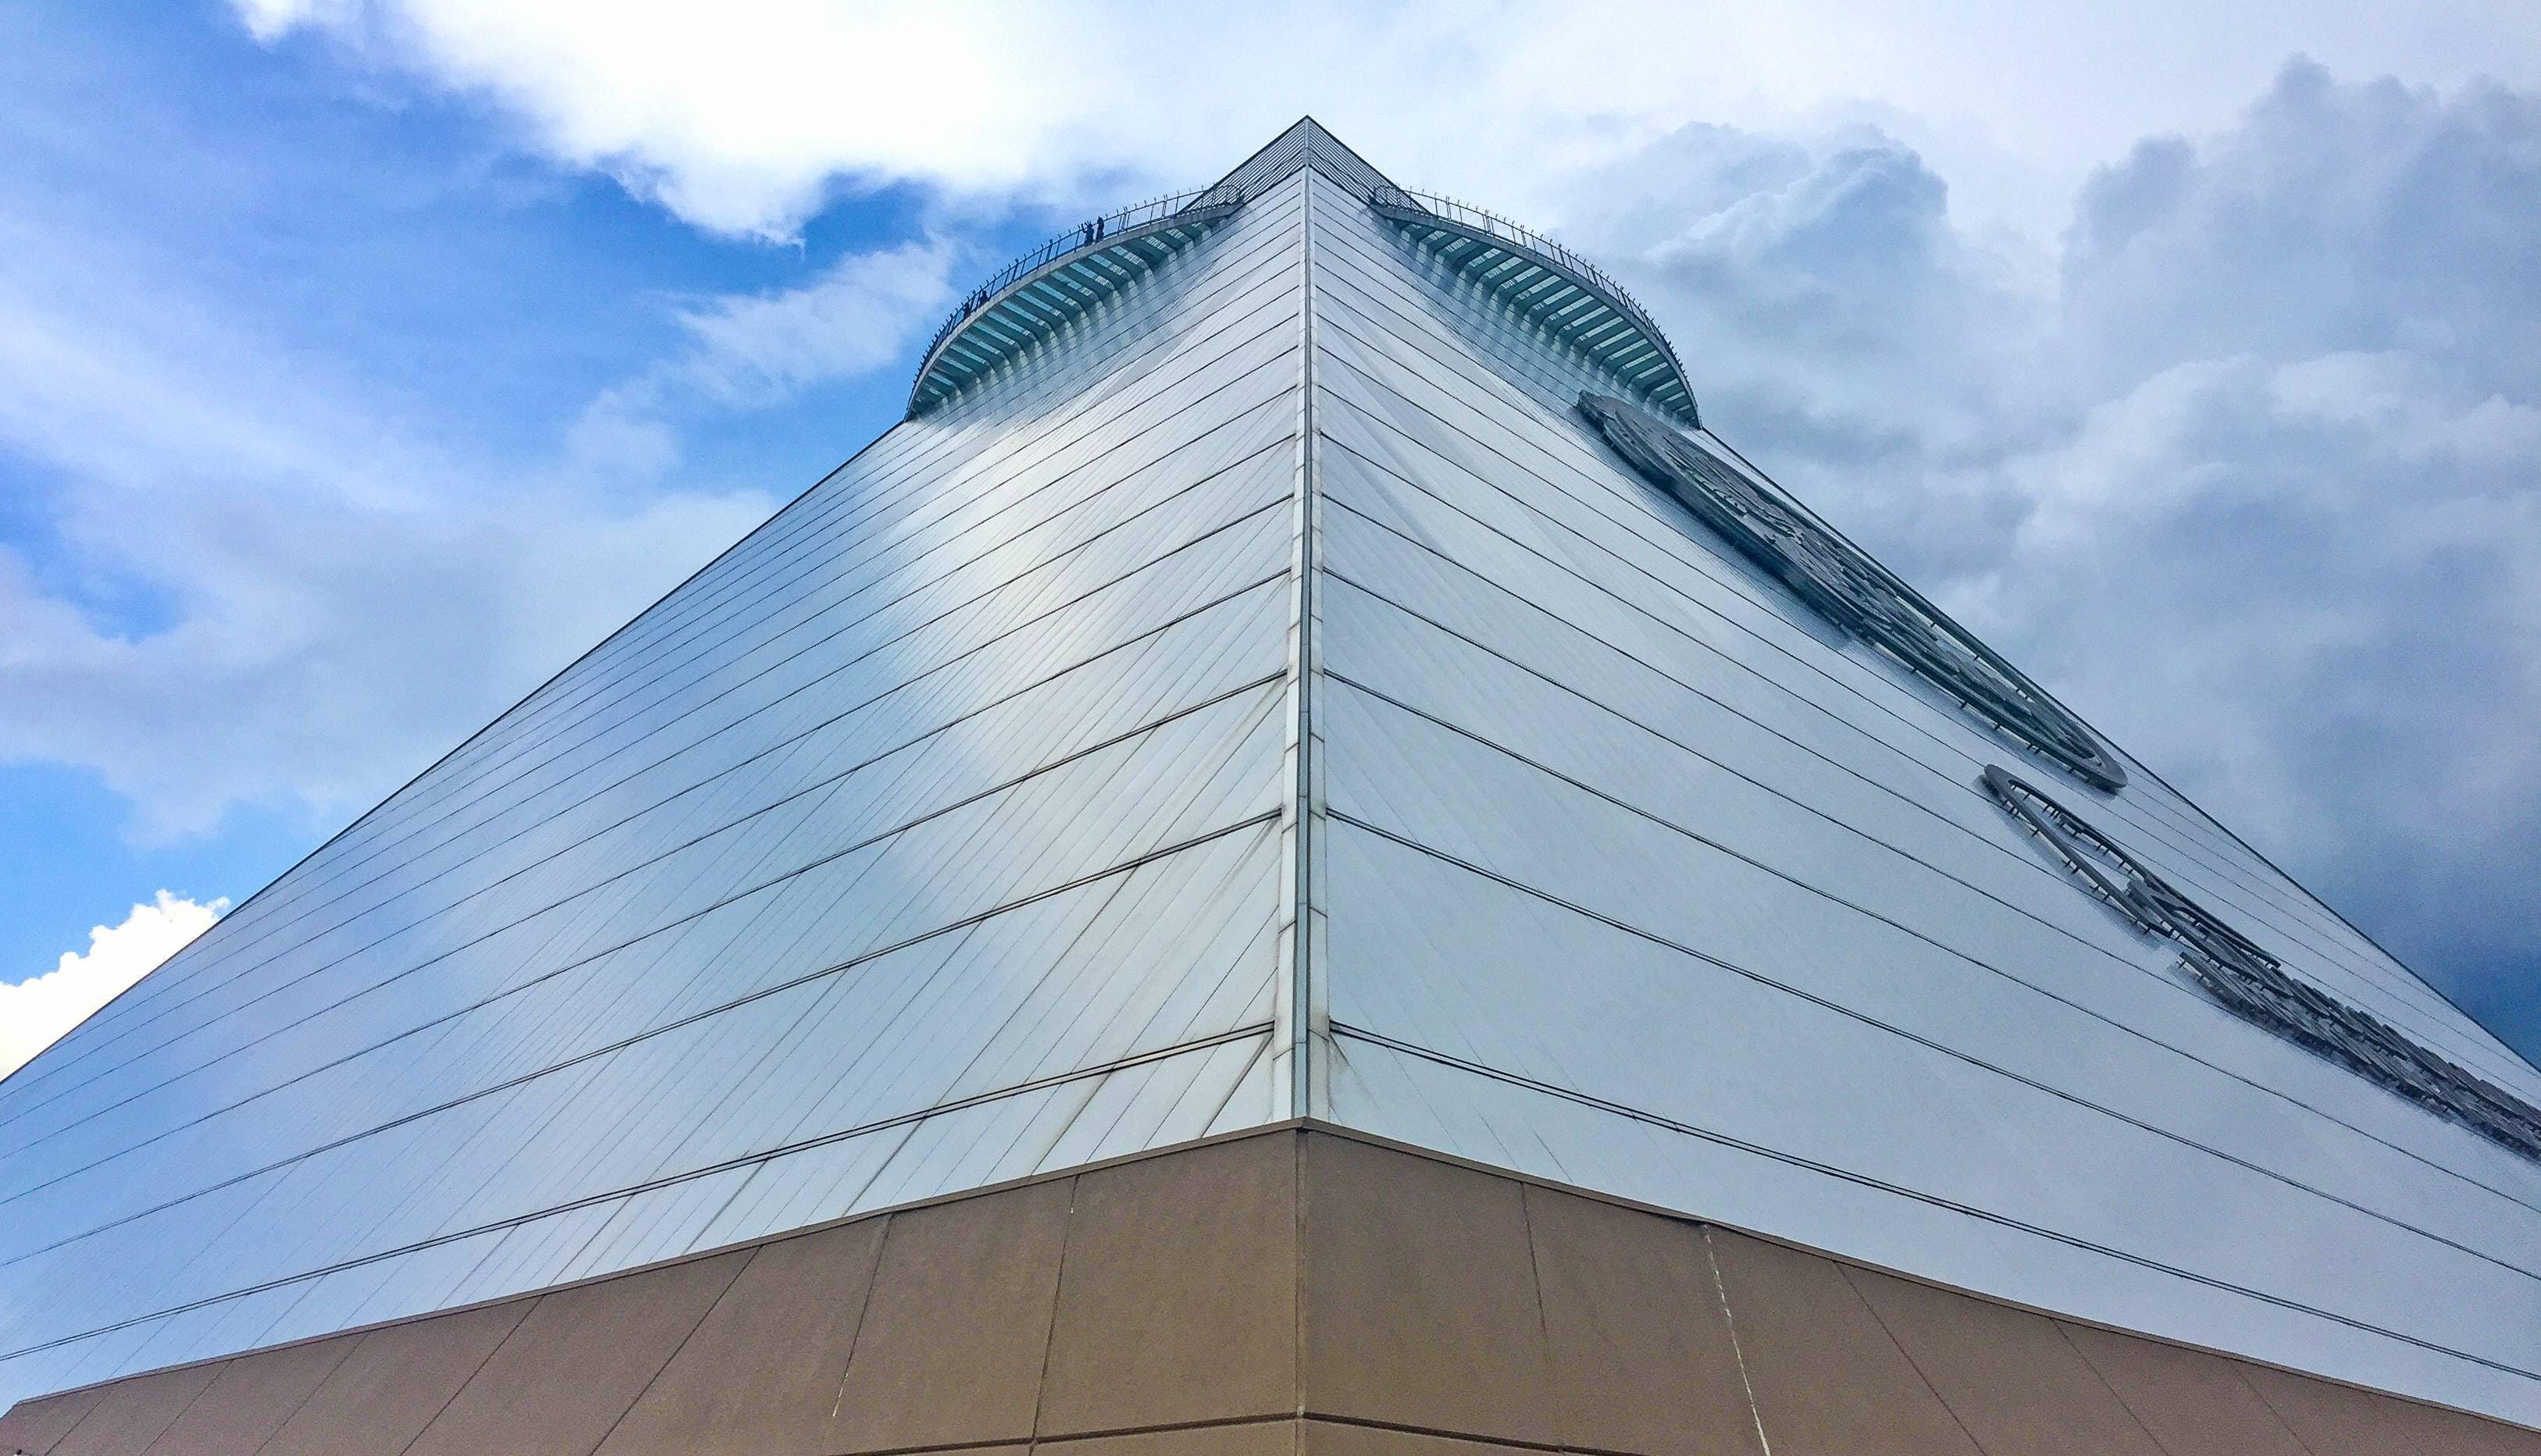 memphis-pyramid-with-nanawall-systems-on-top-floor